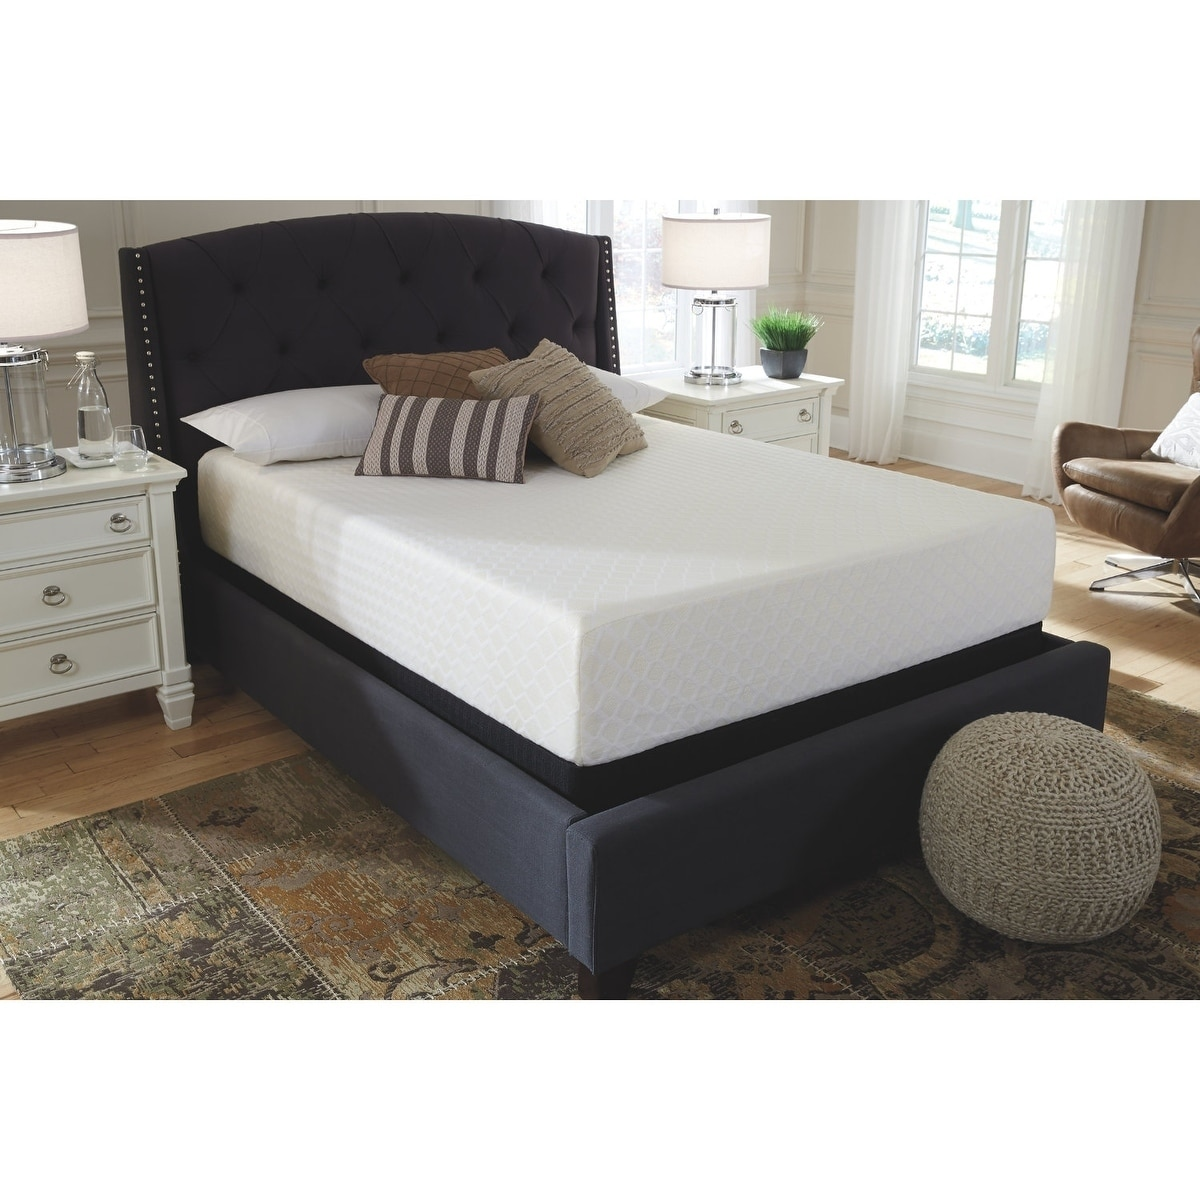 premium selection 63a65 1f8e9 Signature Design by Ashley Chime 12 in King Memory Foam Bed in a Box